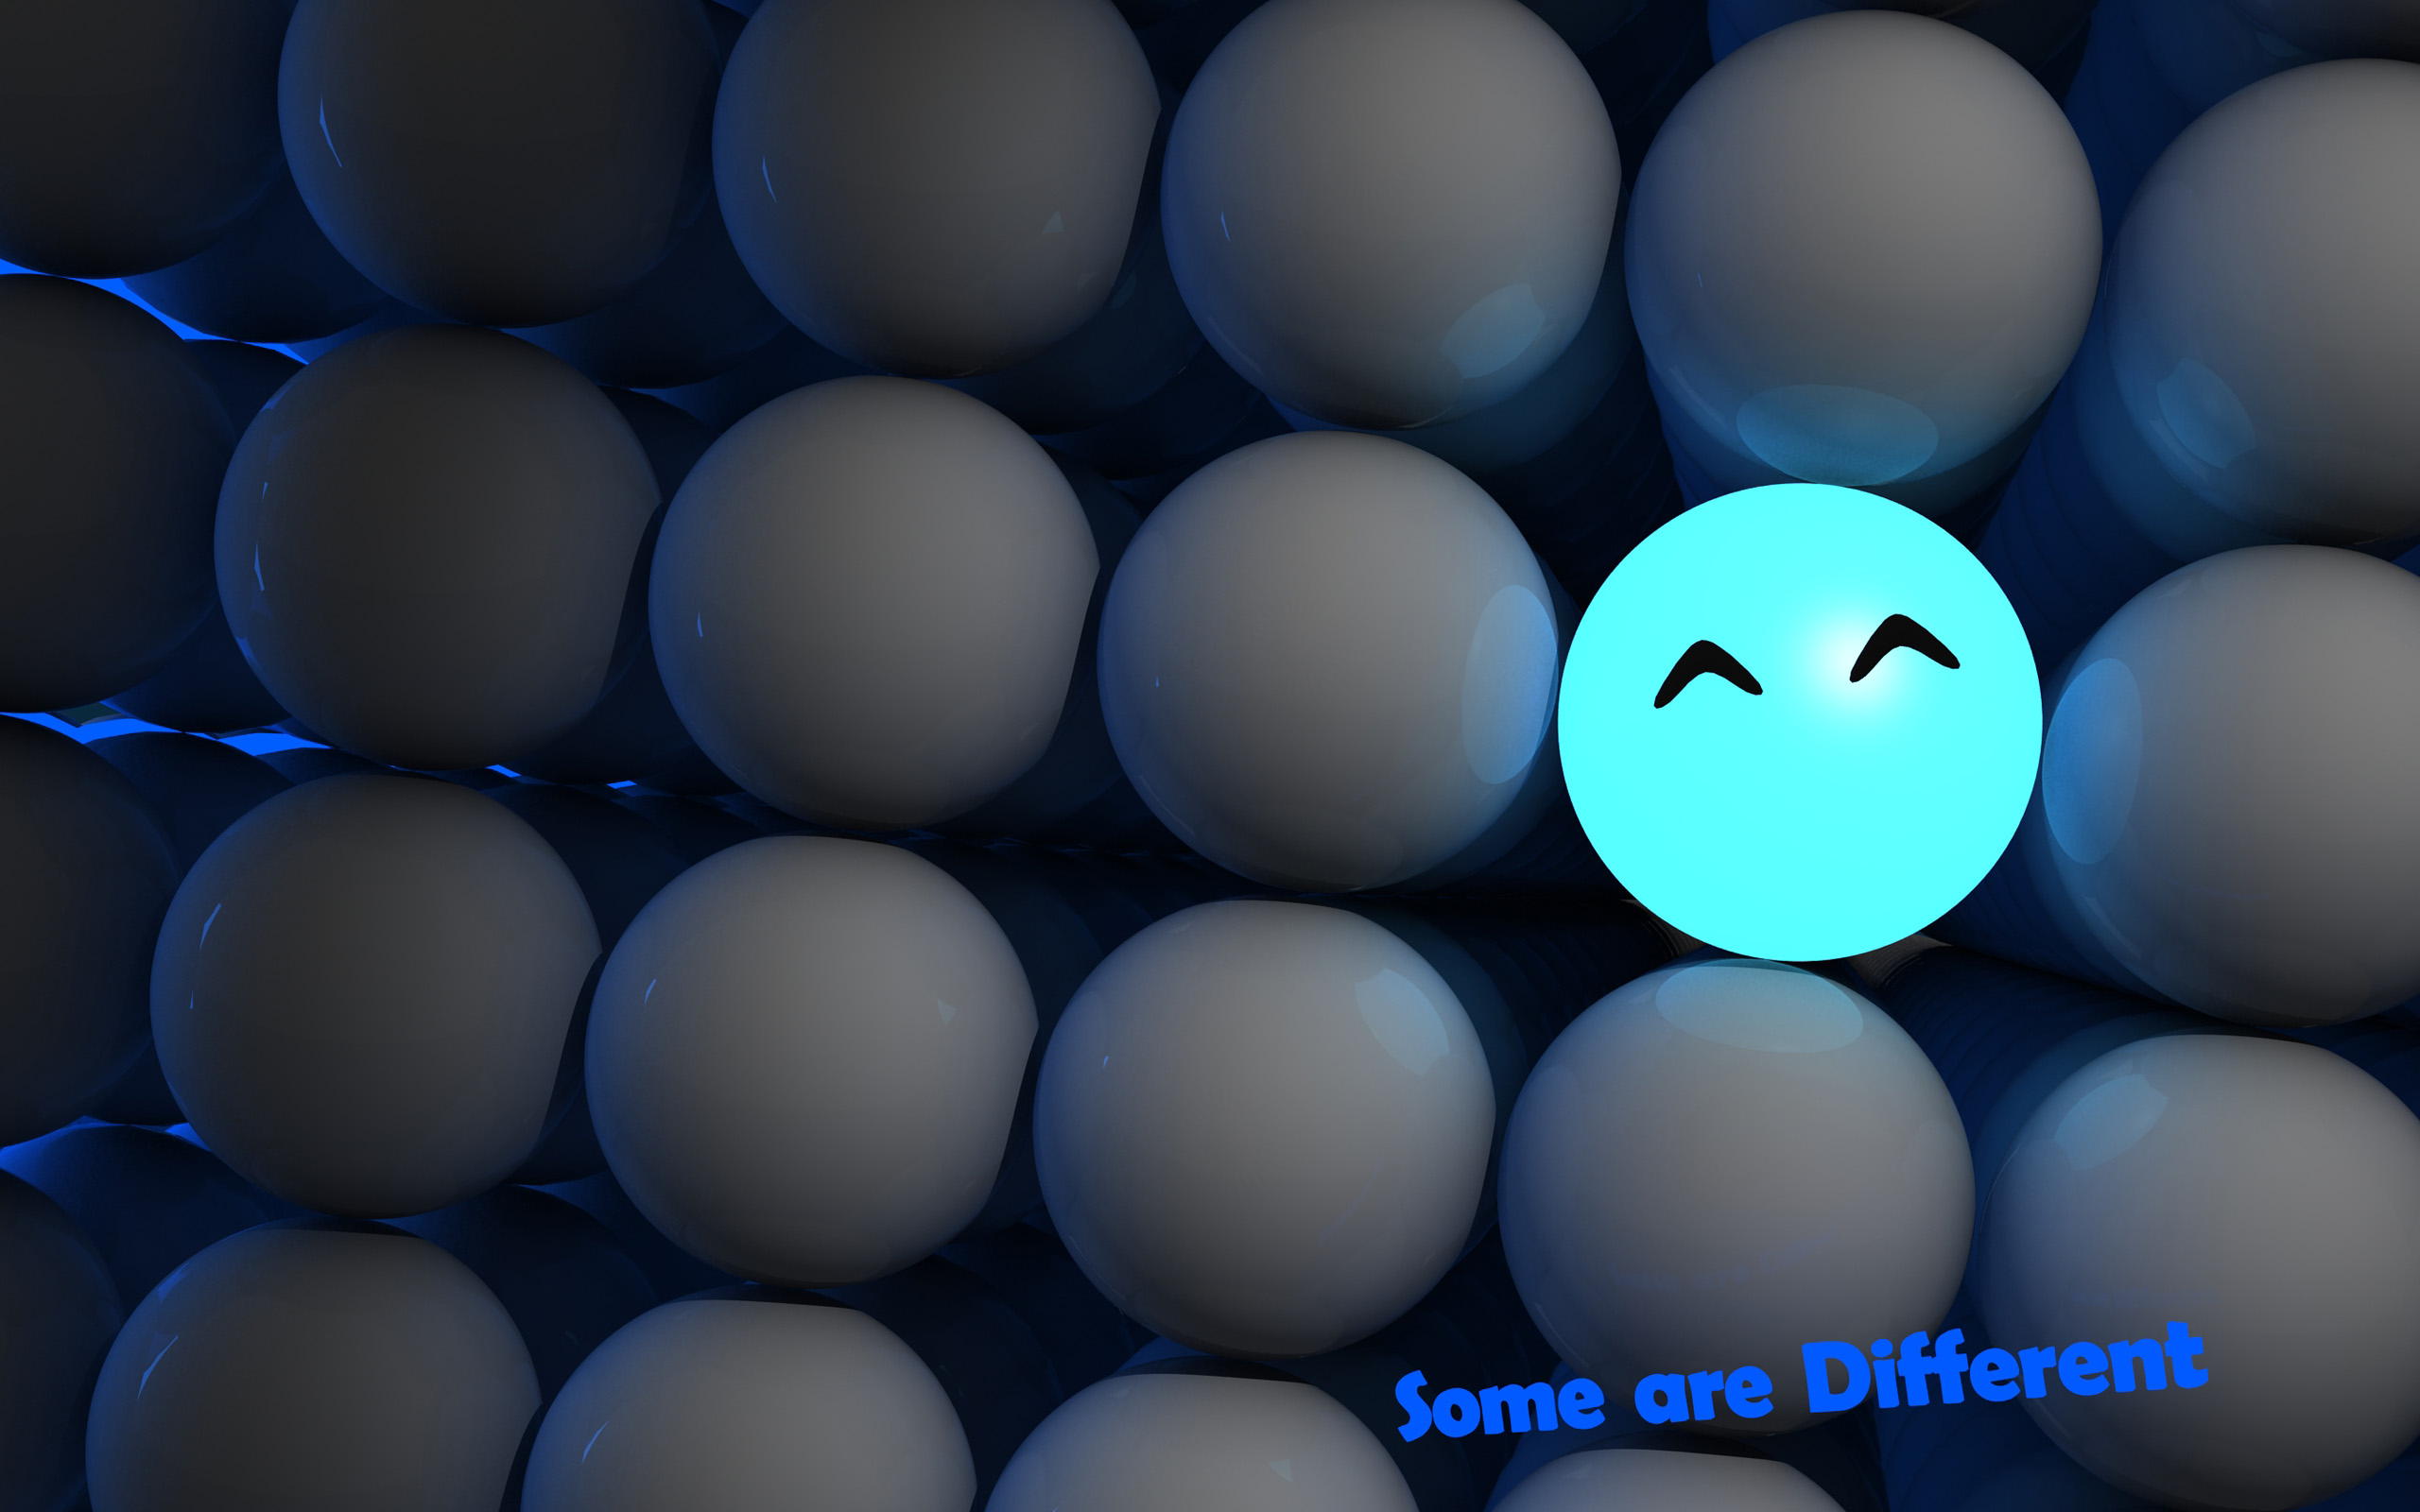 are different hd wallpaper backgroundshdimagessearch wallpaper 2560x1600